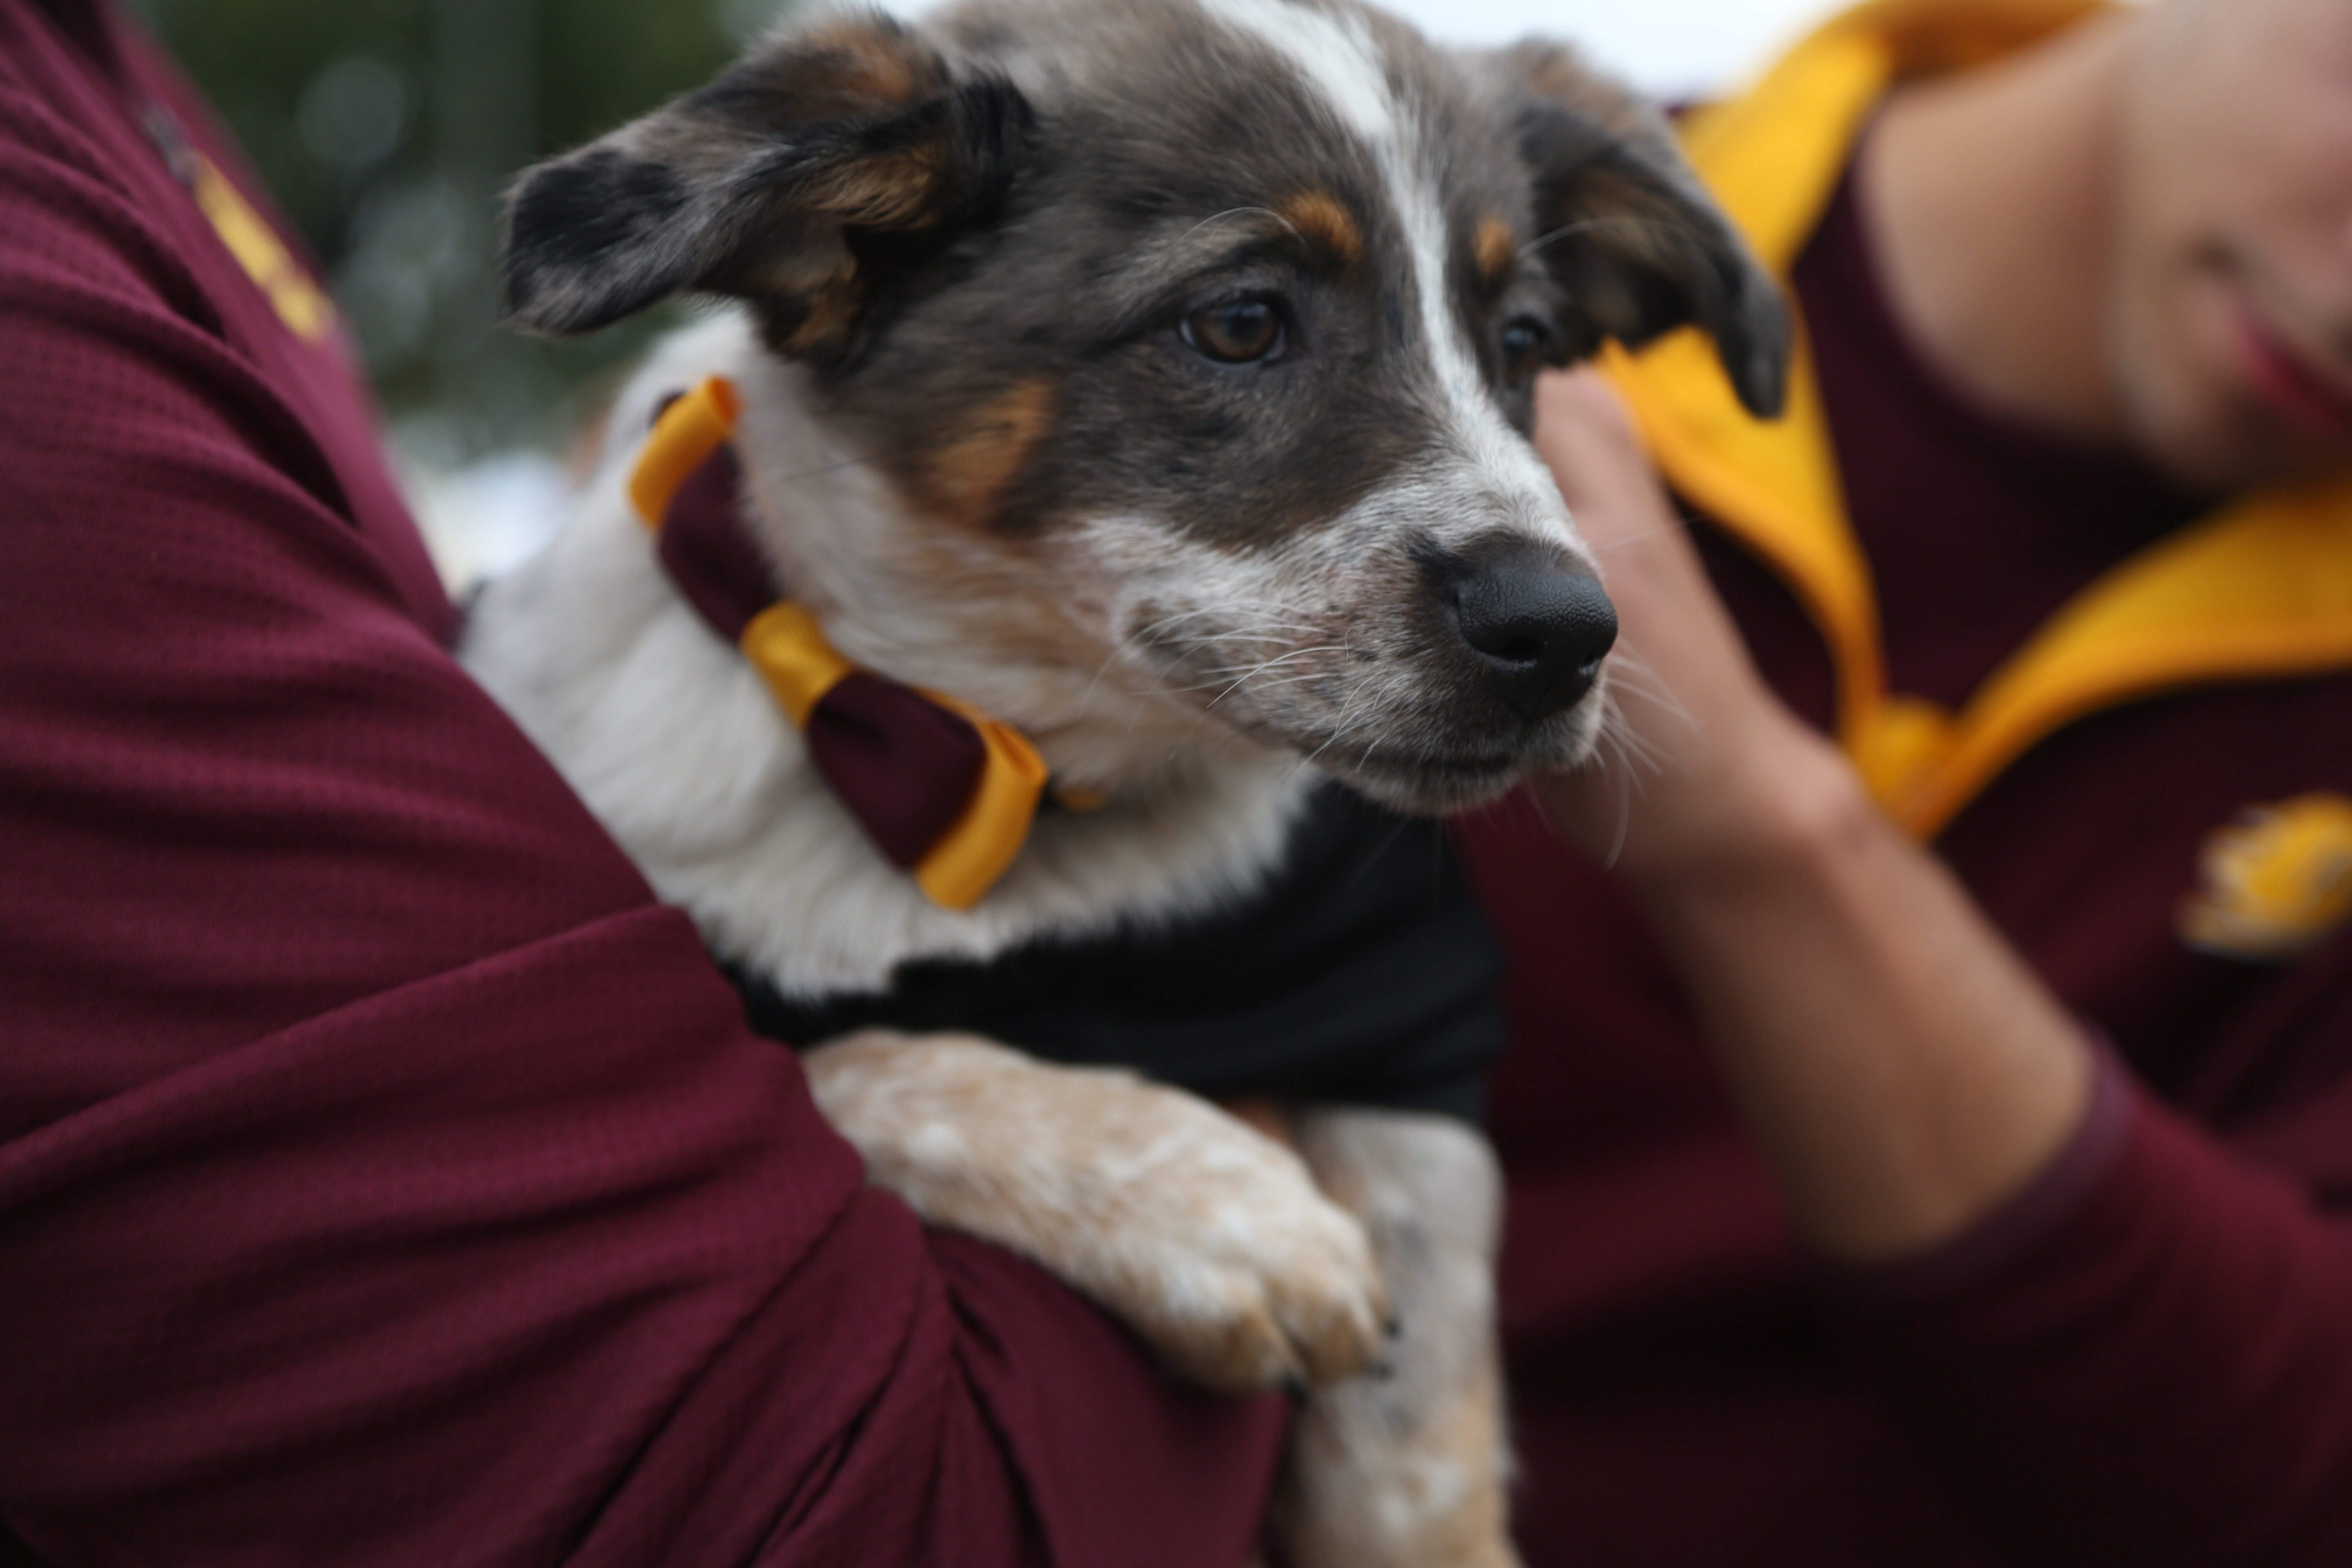 A playful pup shows off her chip pride at CMU fans cheer on the chips at the Central vs. Western football game at Kelly/ Shorts Stadium on Saturday, October 1, 2016.